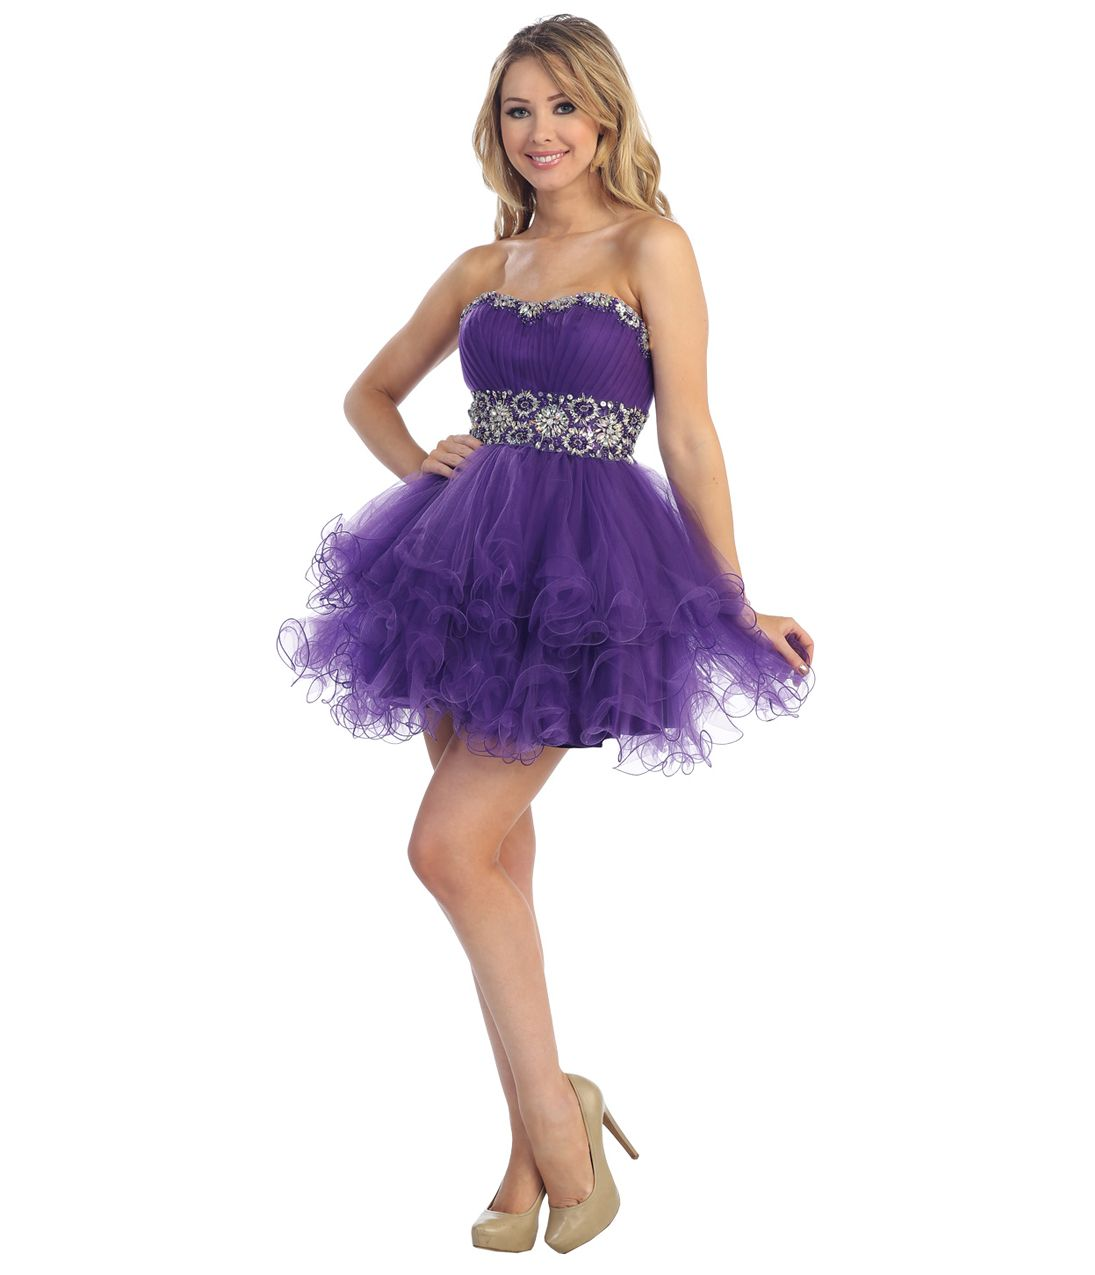 78 Best images about Short Prom Dresses on Pinterest  Satin ...